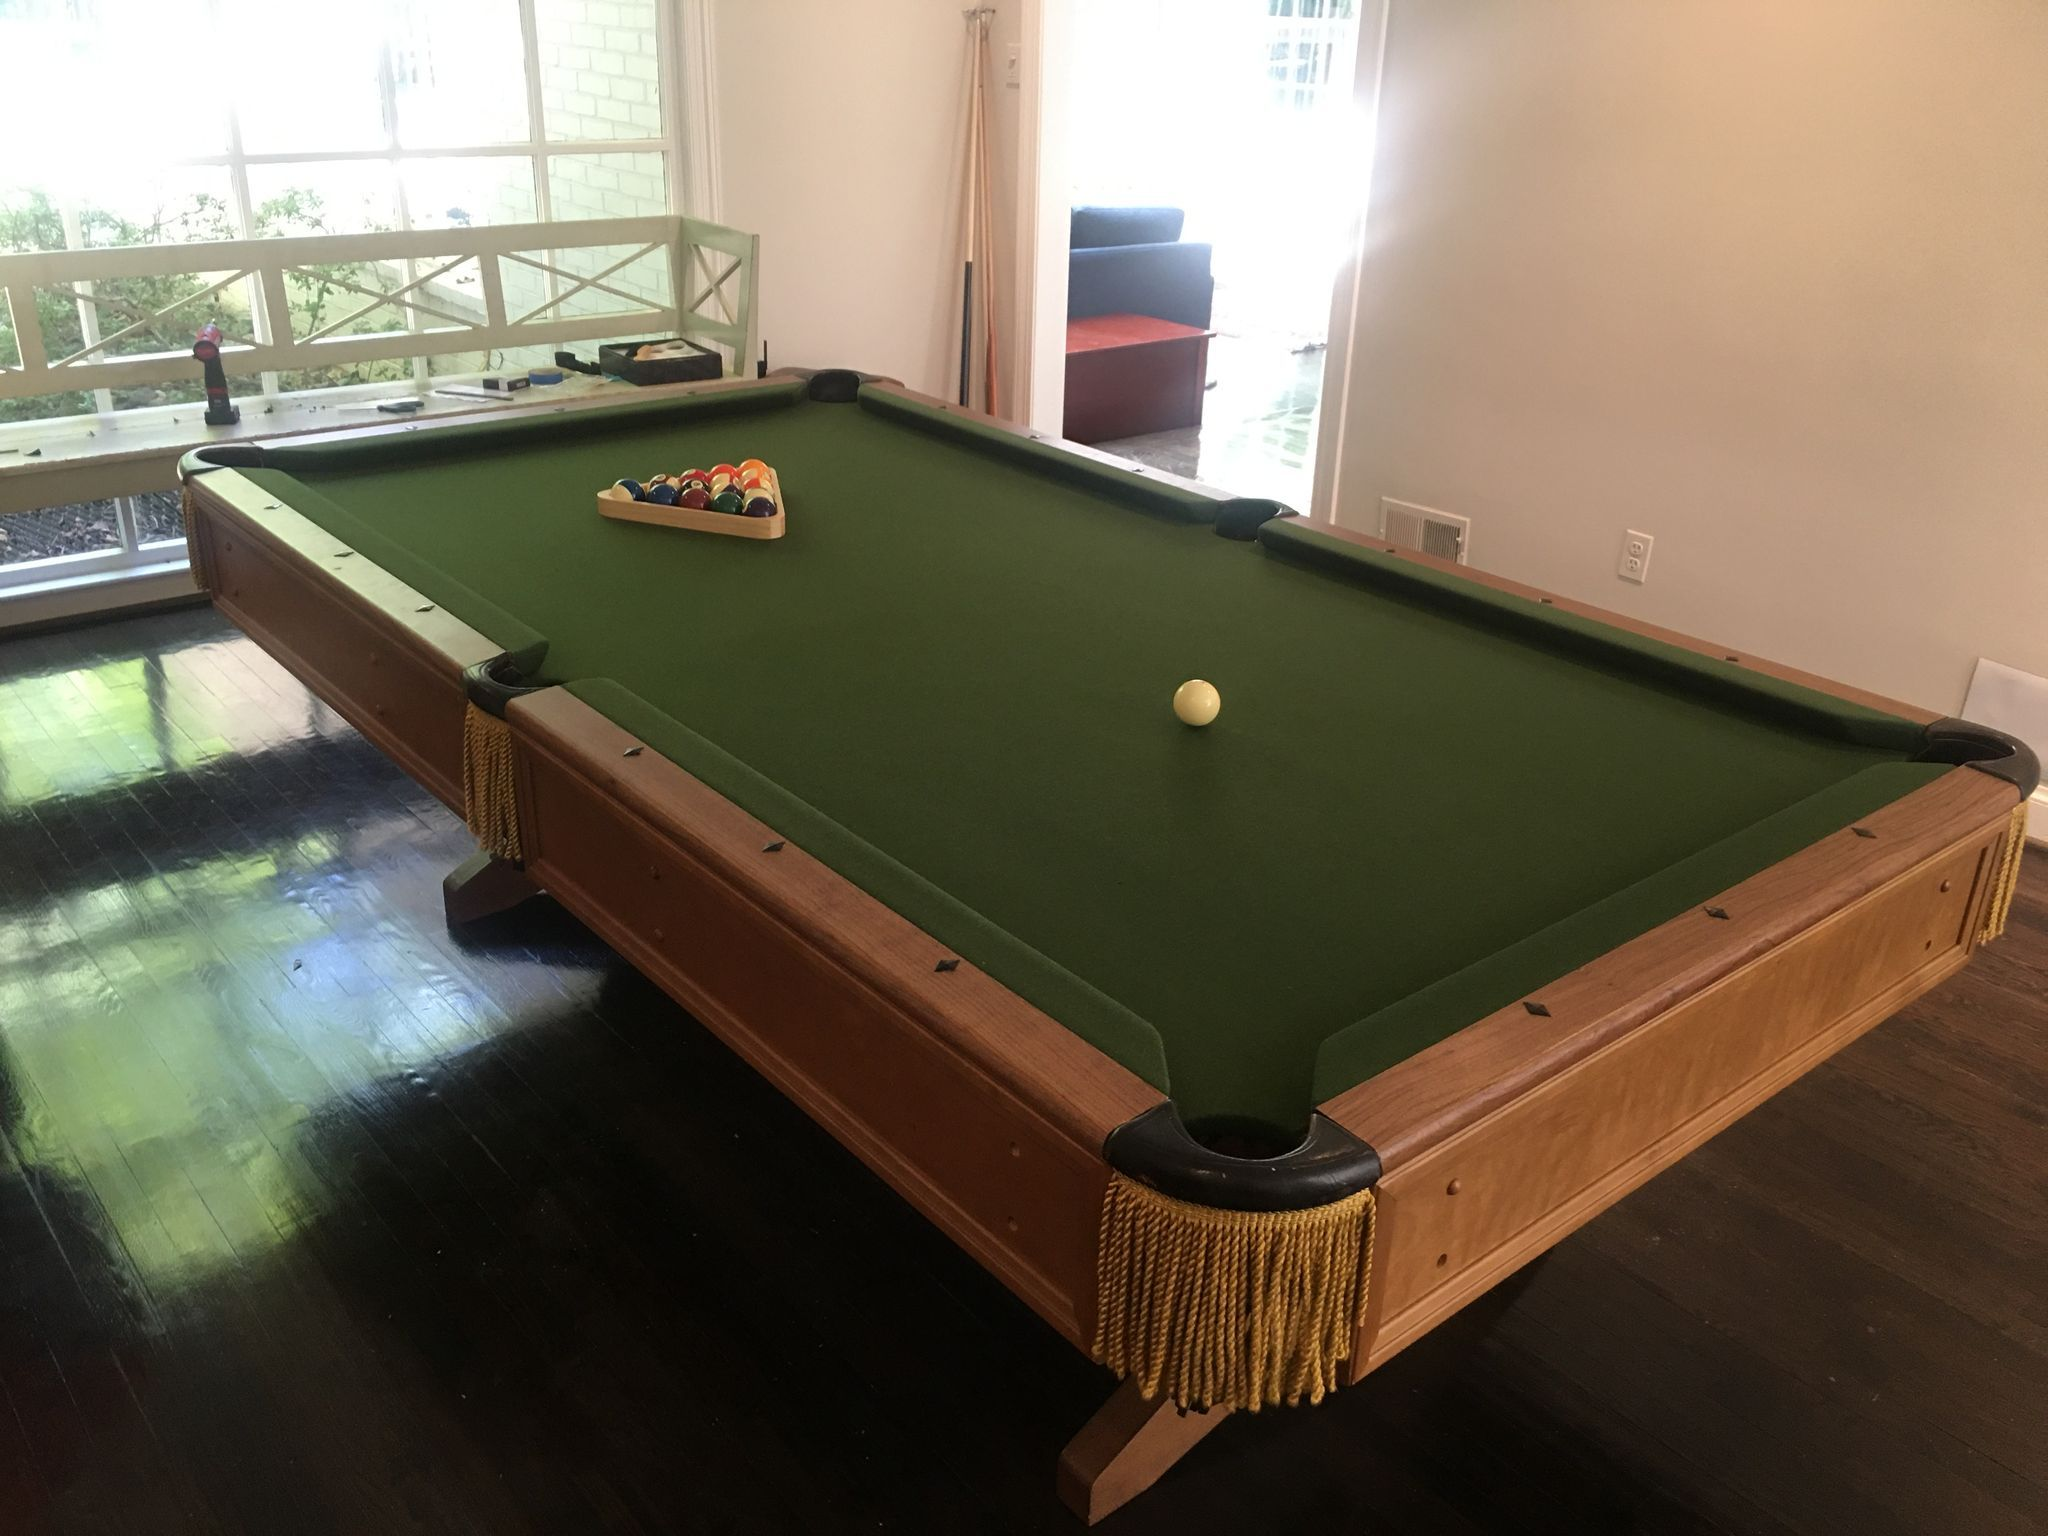 Pool table movers in aldie Virginia by Furniture Experts